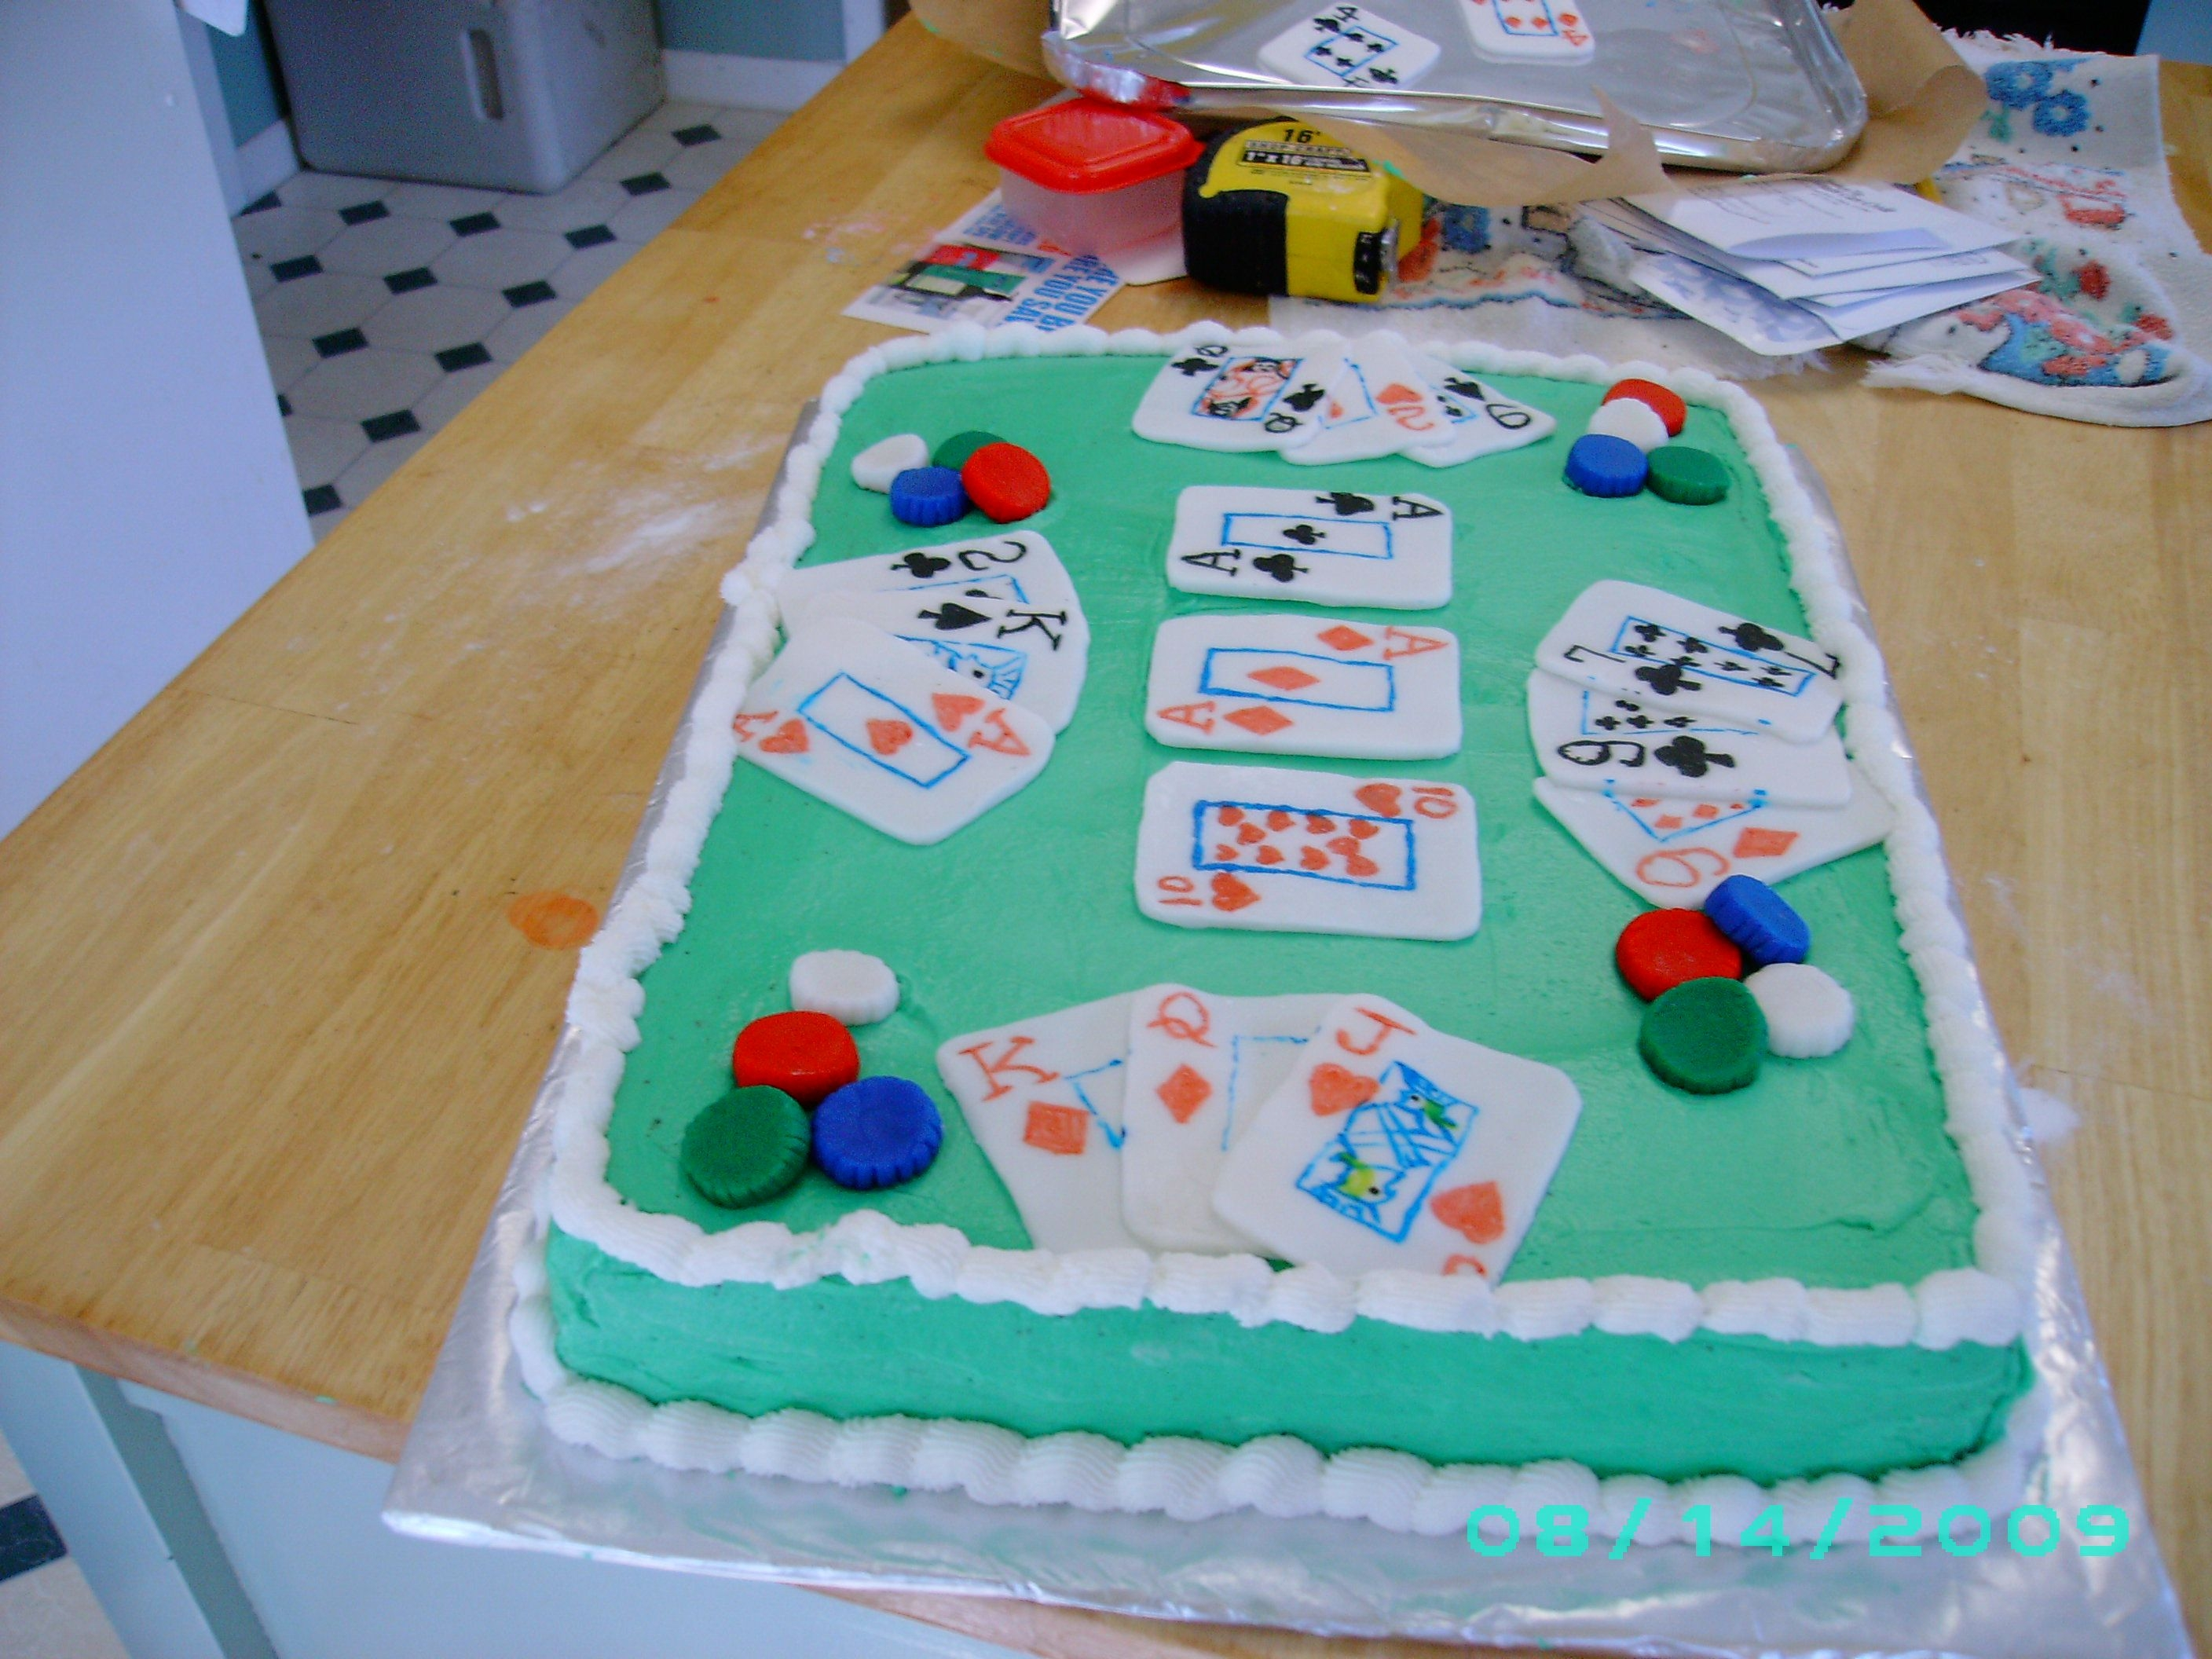 Playing Cards  Brother in law like playing cards. So i made this cake for him on his b-day. He like it alot. Thanks for looking at all my cakes and...